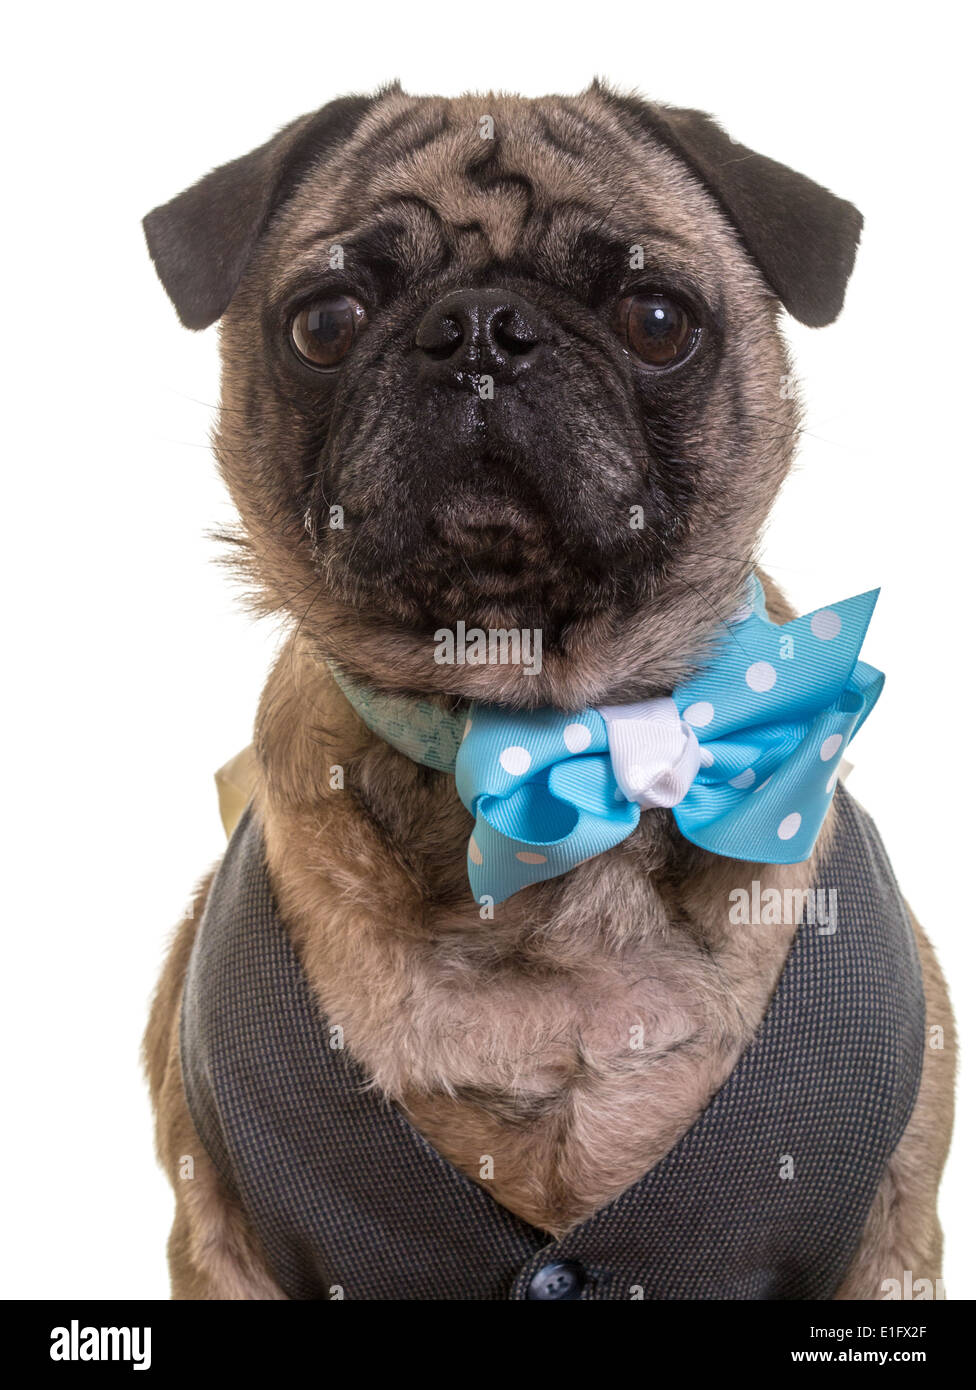 Cute pug dog wearing a vest and bow tie. - Stock Image